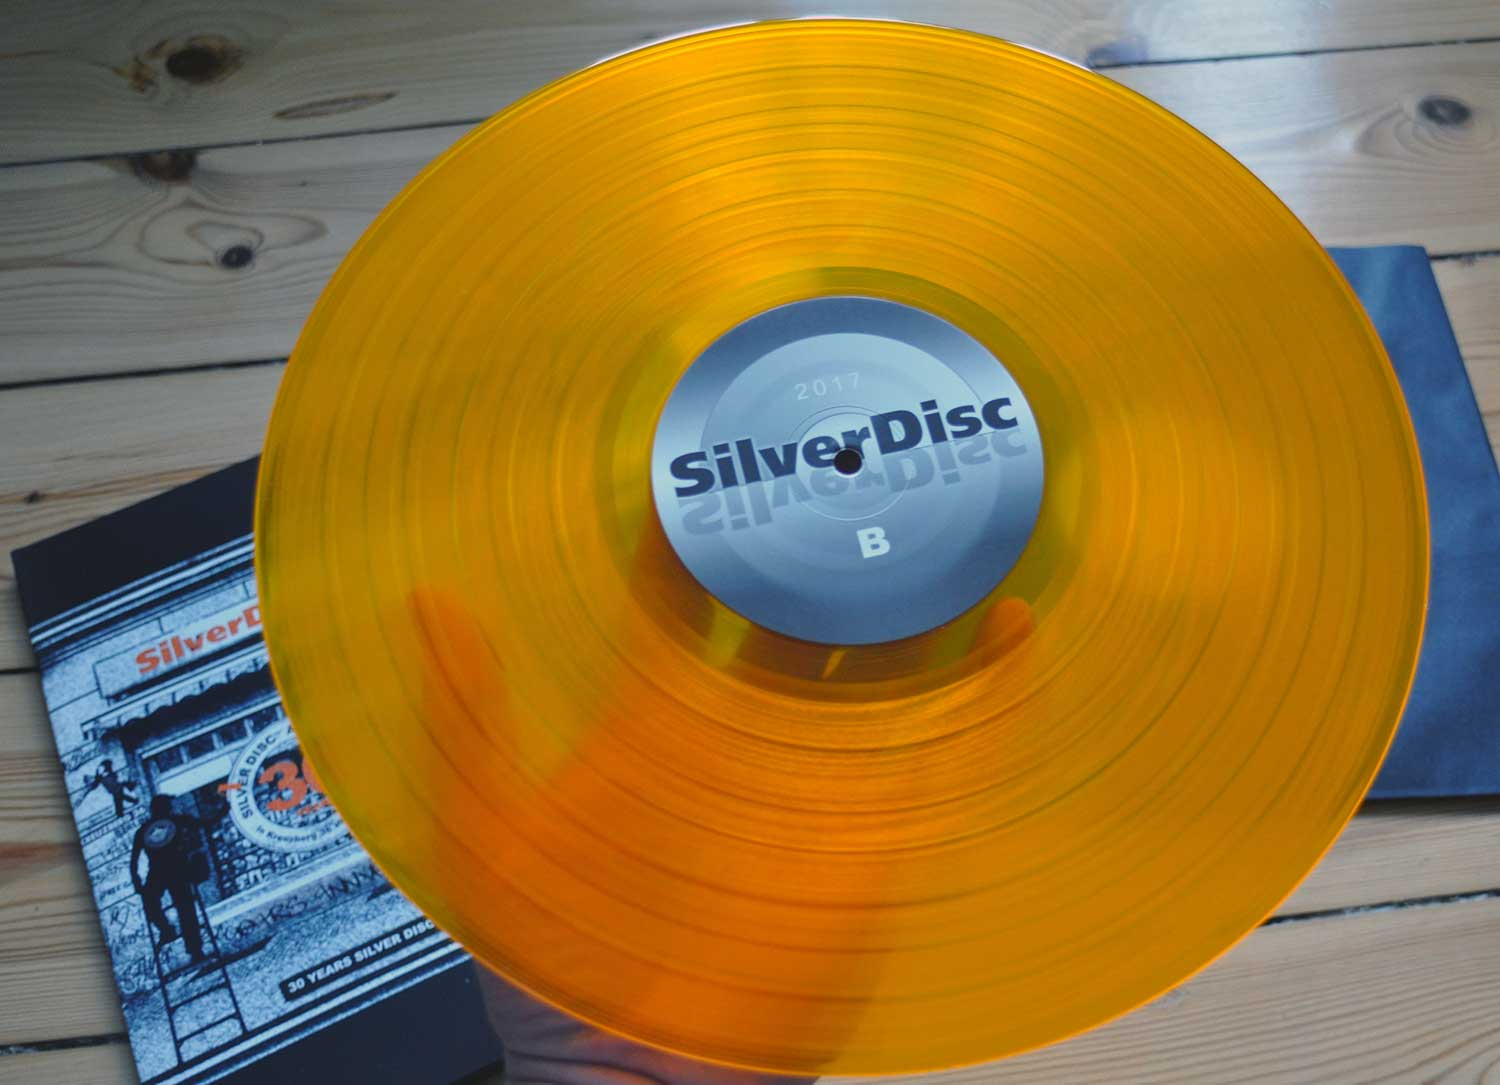 Jubiläums Sampler Silver Disc - Die orange Vinyl